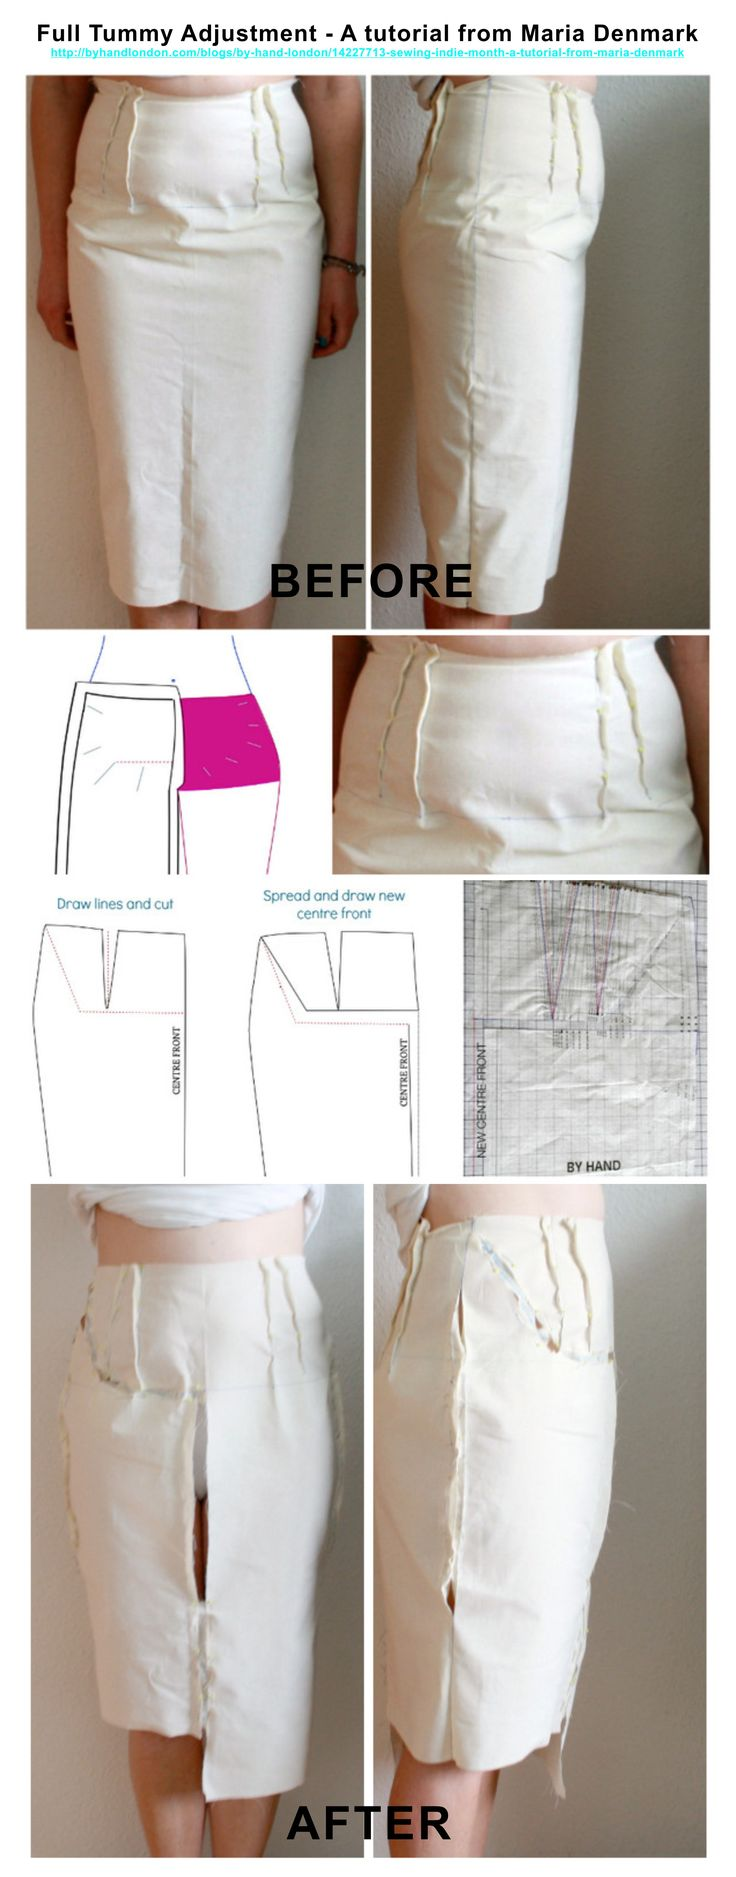 Tutorial pour ajuster une jupe. http://byhandlondon.com/blogs/by-hand-london/14227713-sewing-indie-month-a-tutorial-from-maria-denmark